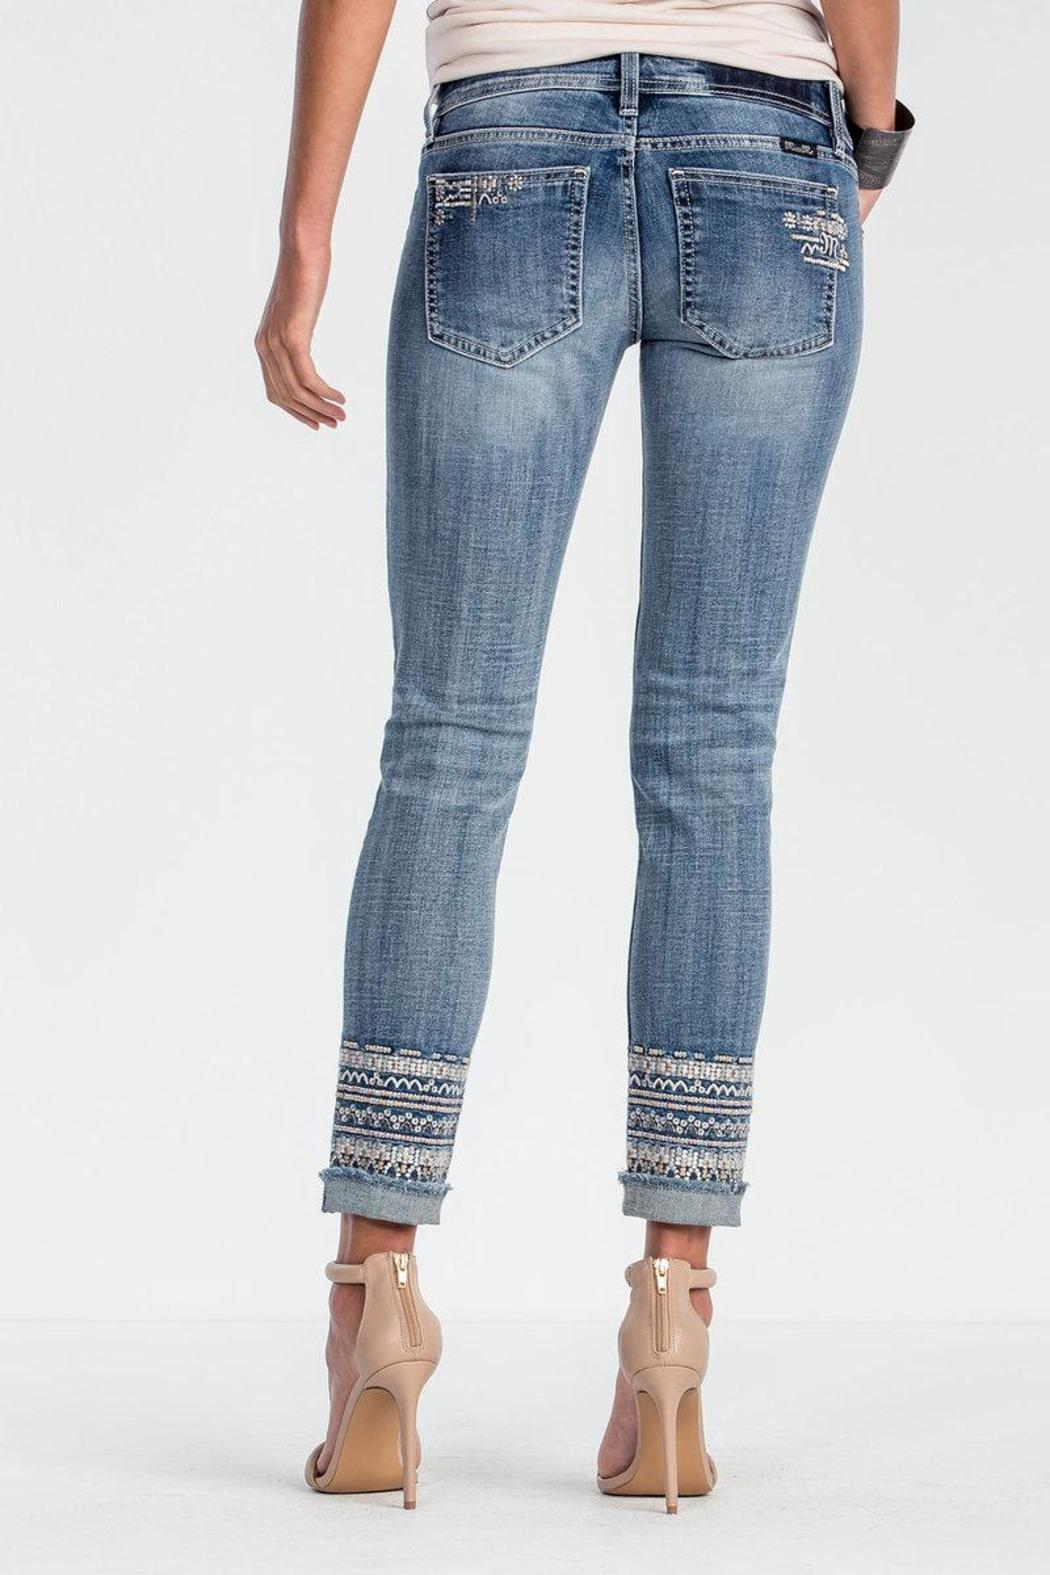 Miss Me Embroidered Frayed Bottom Jeans From Massachusetts